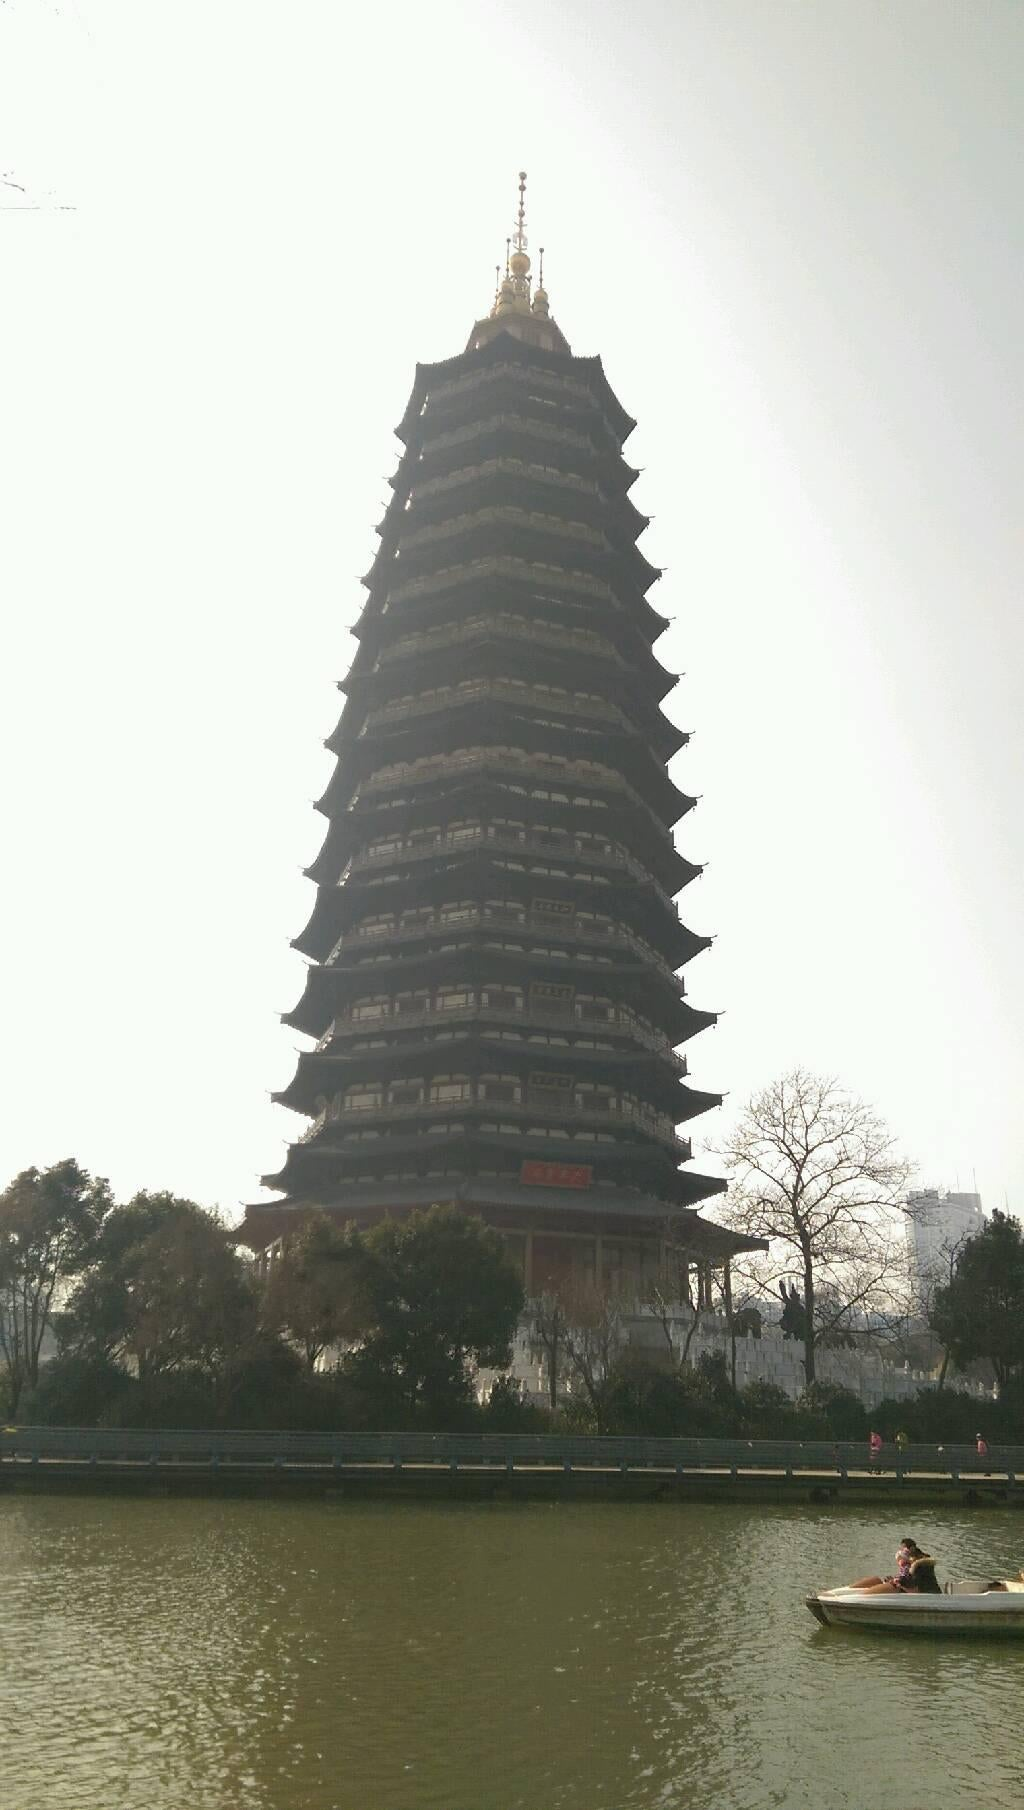 Tianning Tower